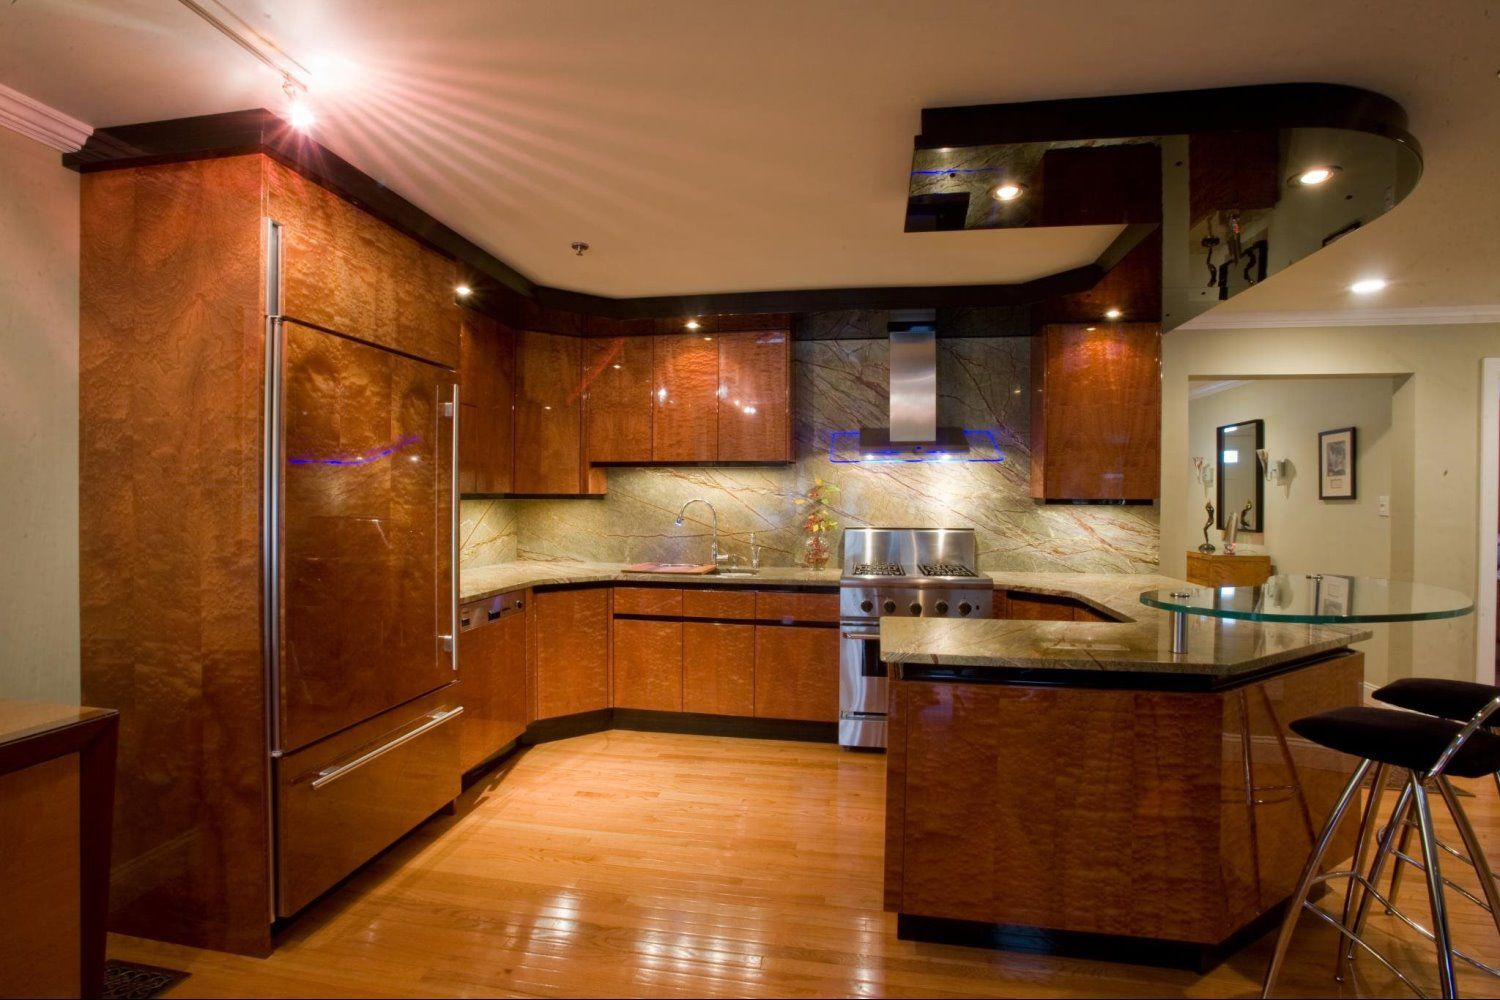 Traditional Photo Gallery - Kitchens By Design, Inc. in ...